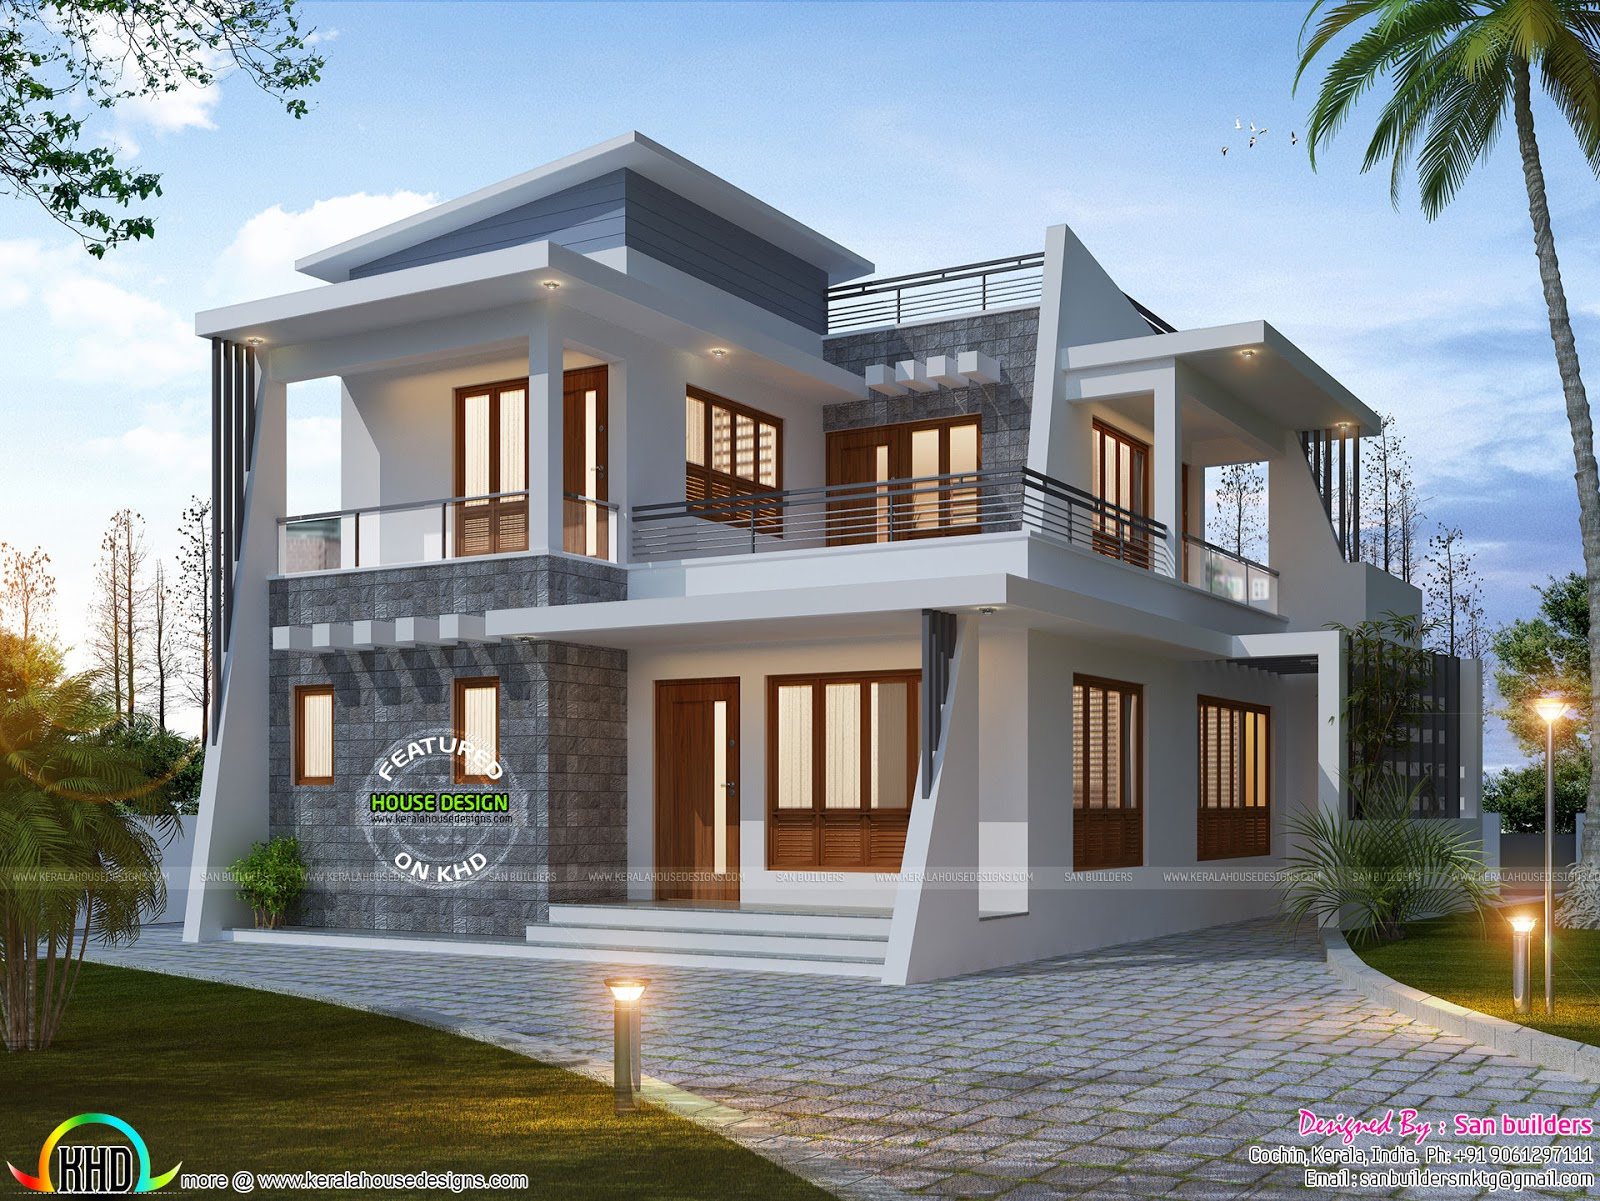 4 bedroom modern home 1885 sq ft kerala home design and for New design house image